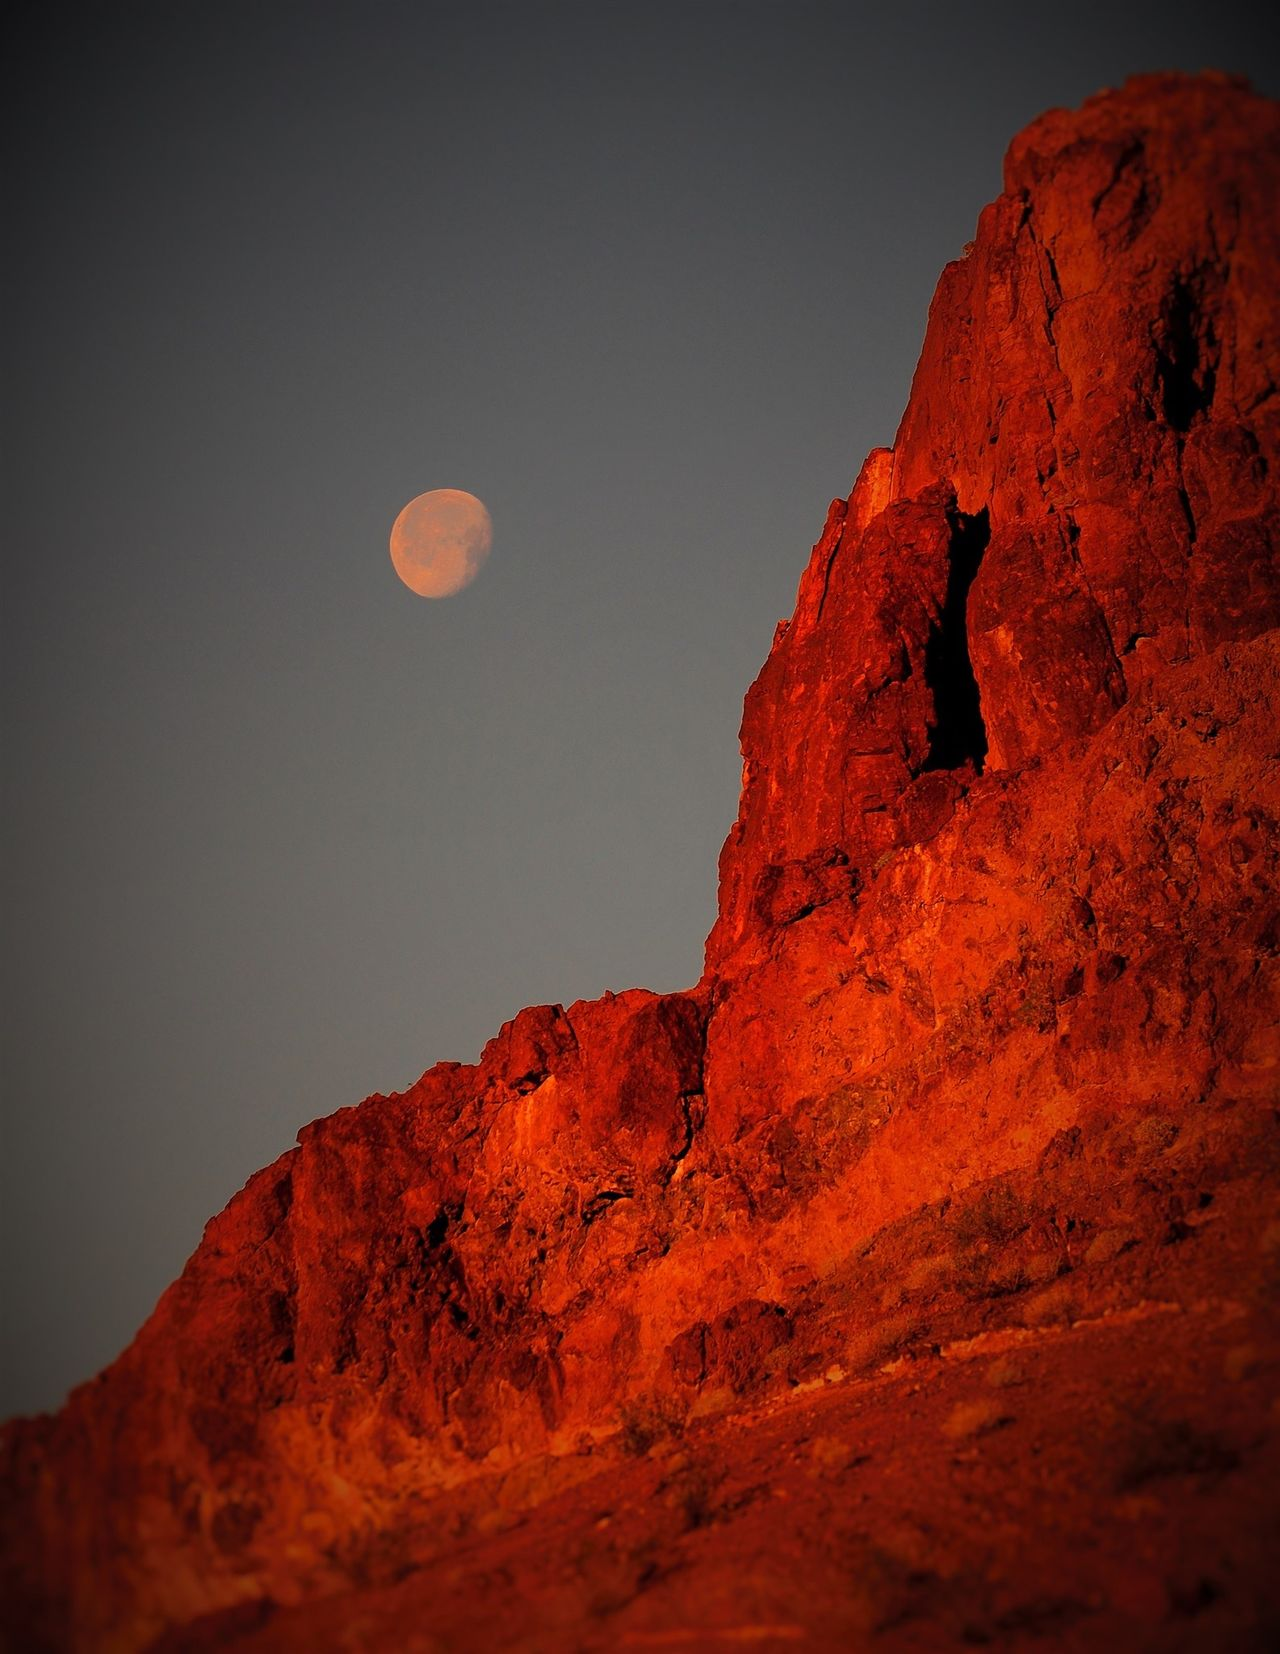 SARA park Crack in the mountain,early morning moon Arizona Beauty In Nature Full Moon Landscape Moon Morning Sky Nature Outdoors Rock - Object Scenics